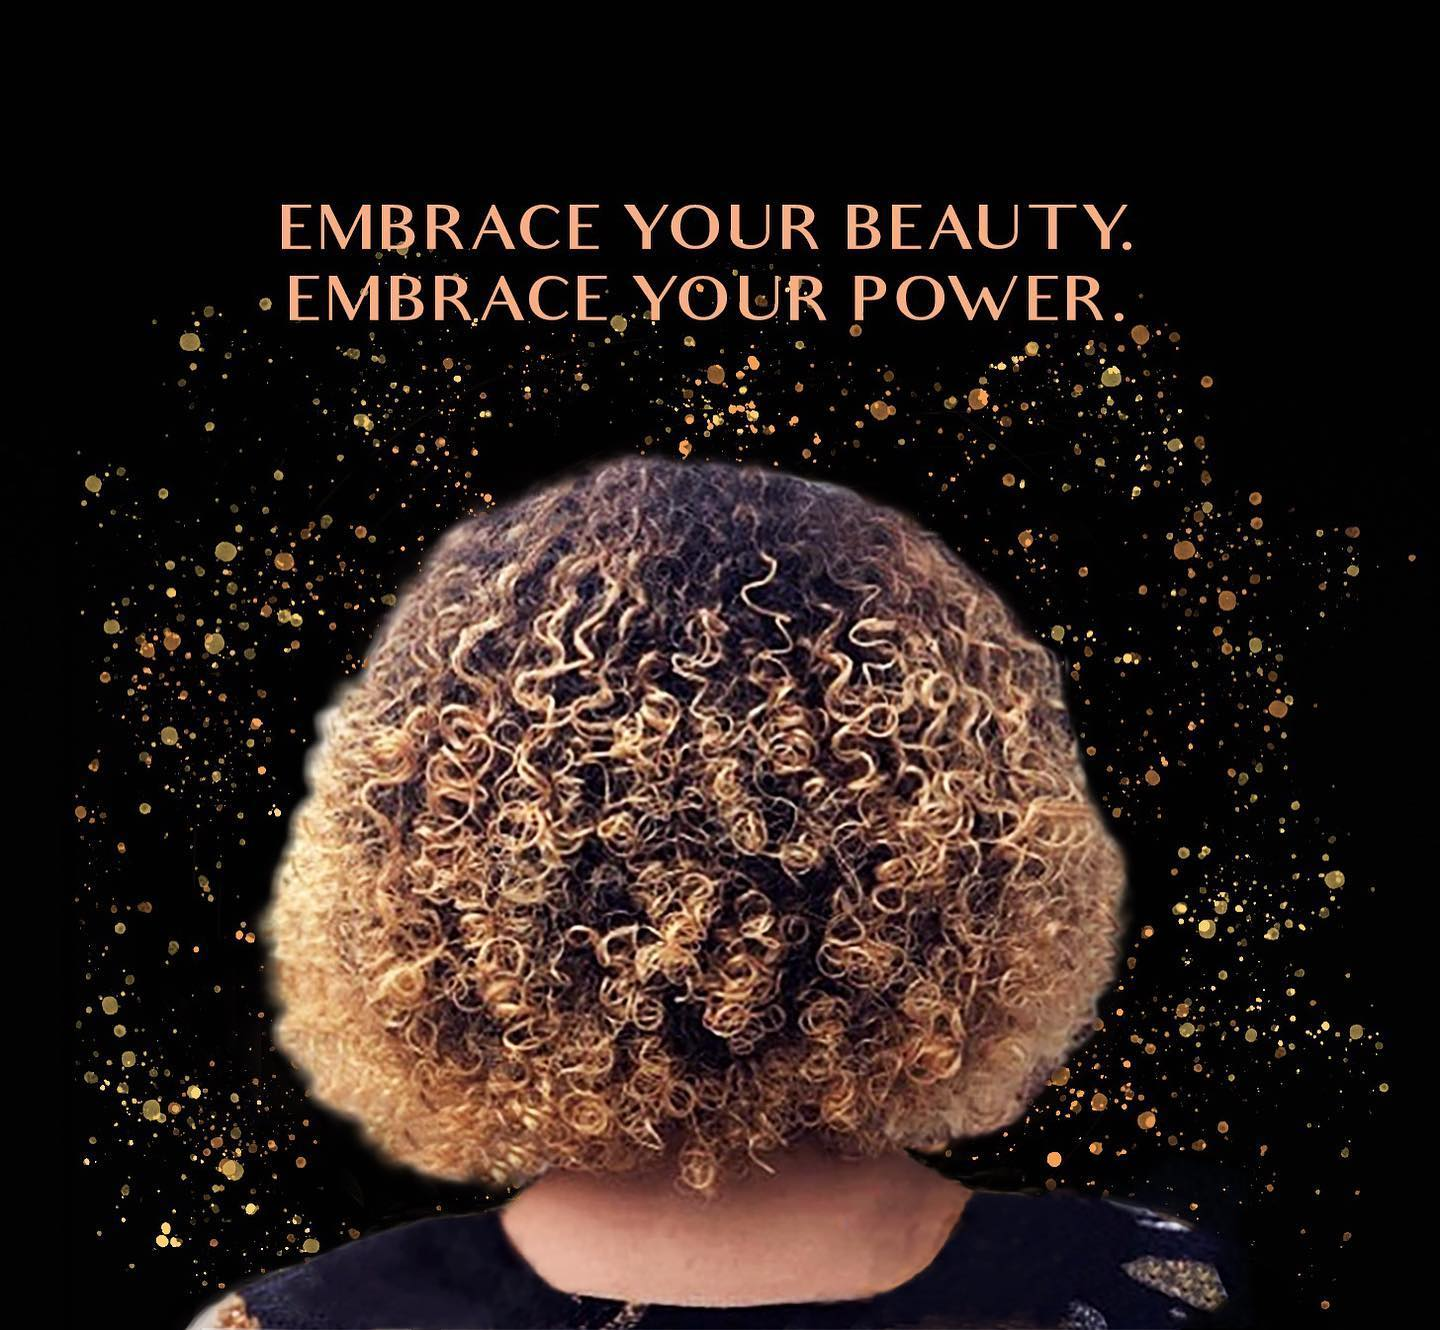 Embrace Your Beauty and Your Power